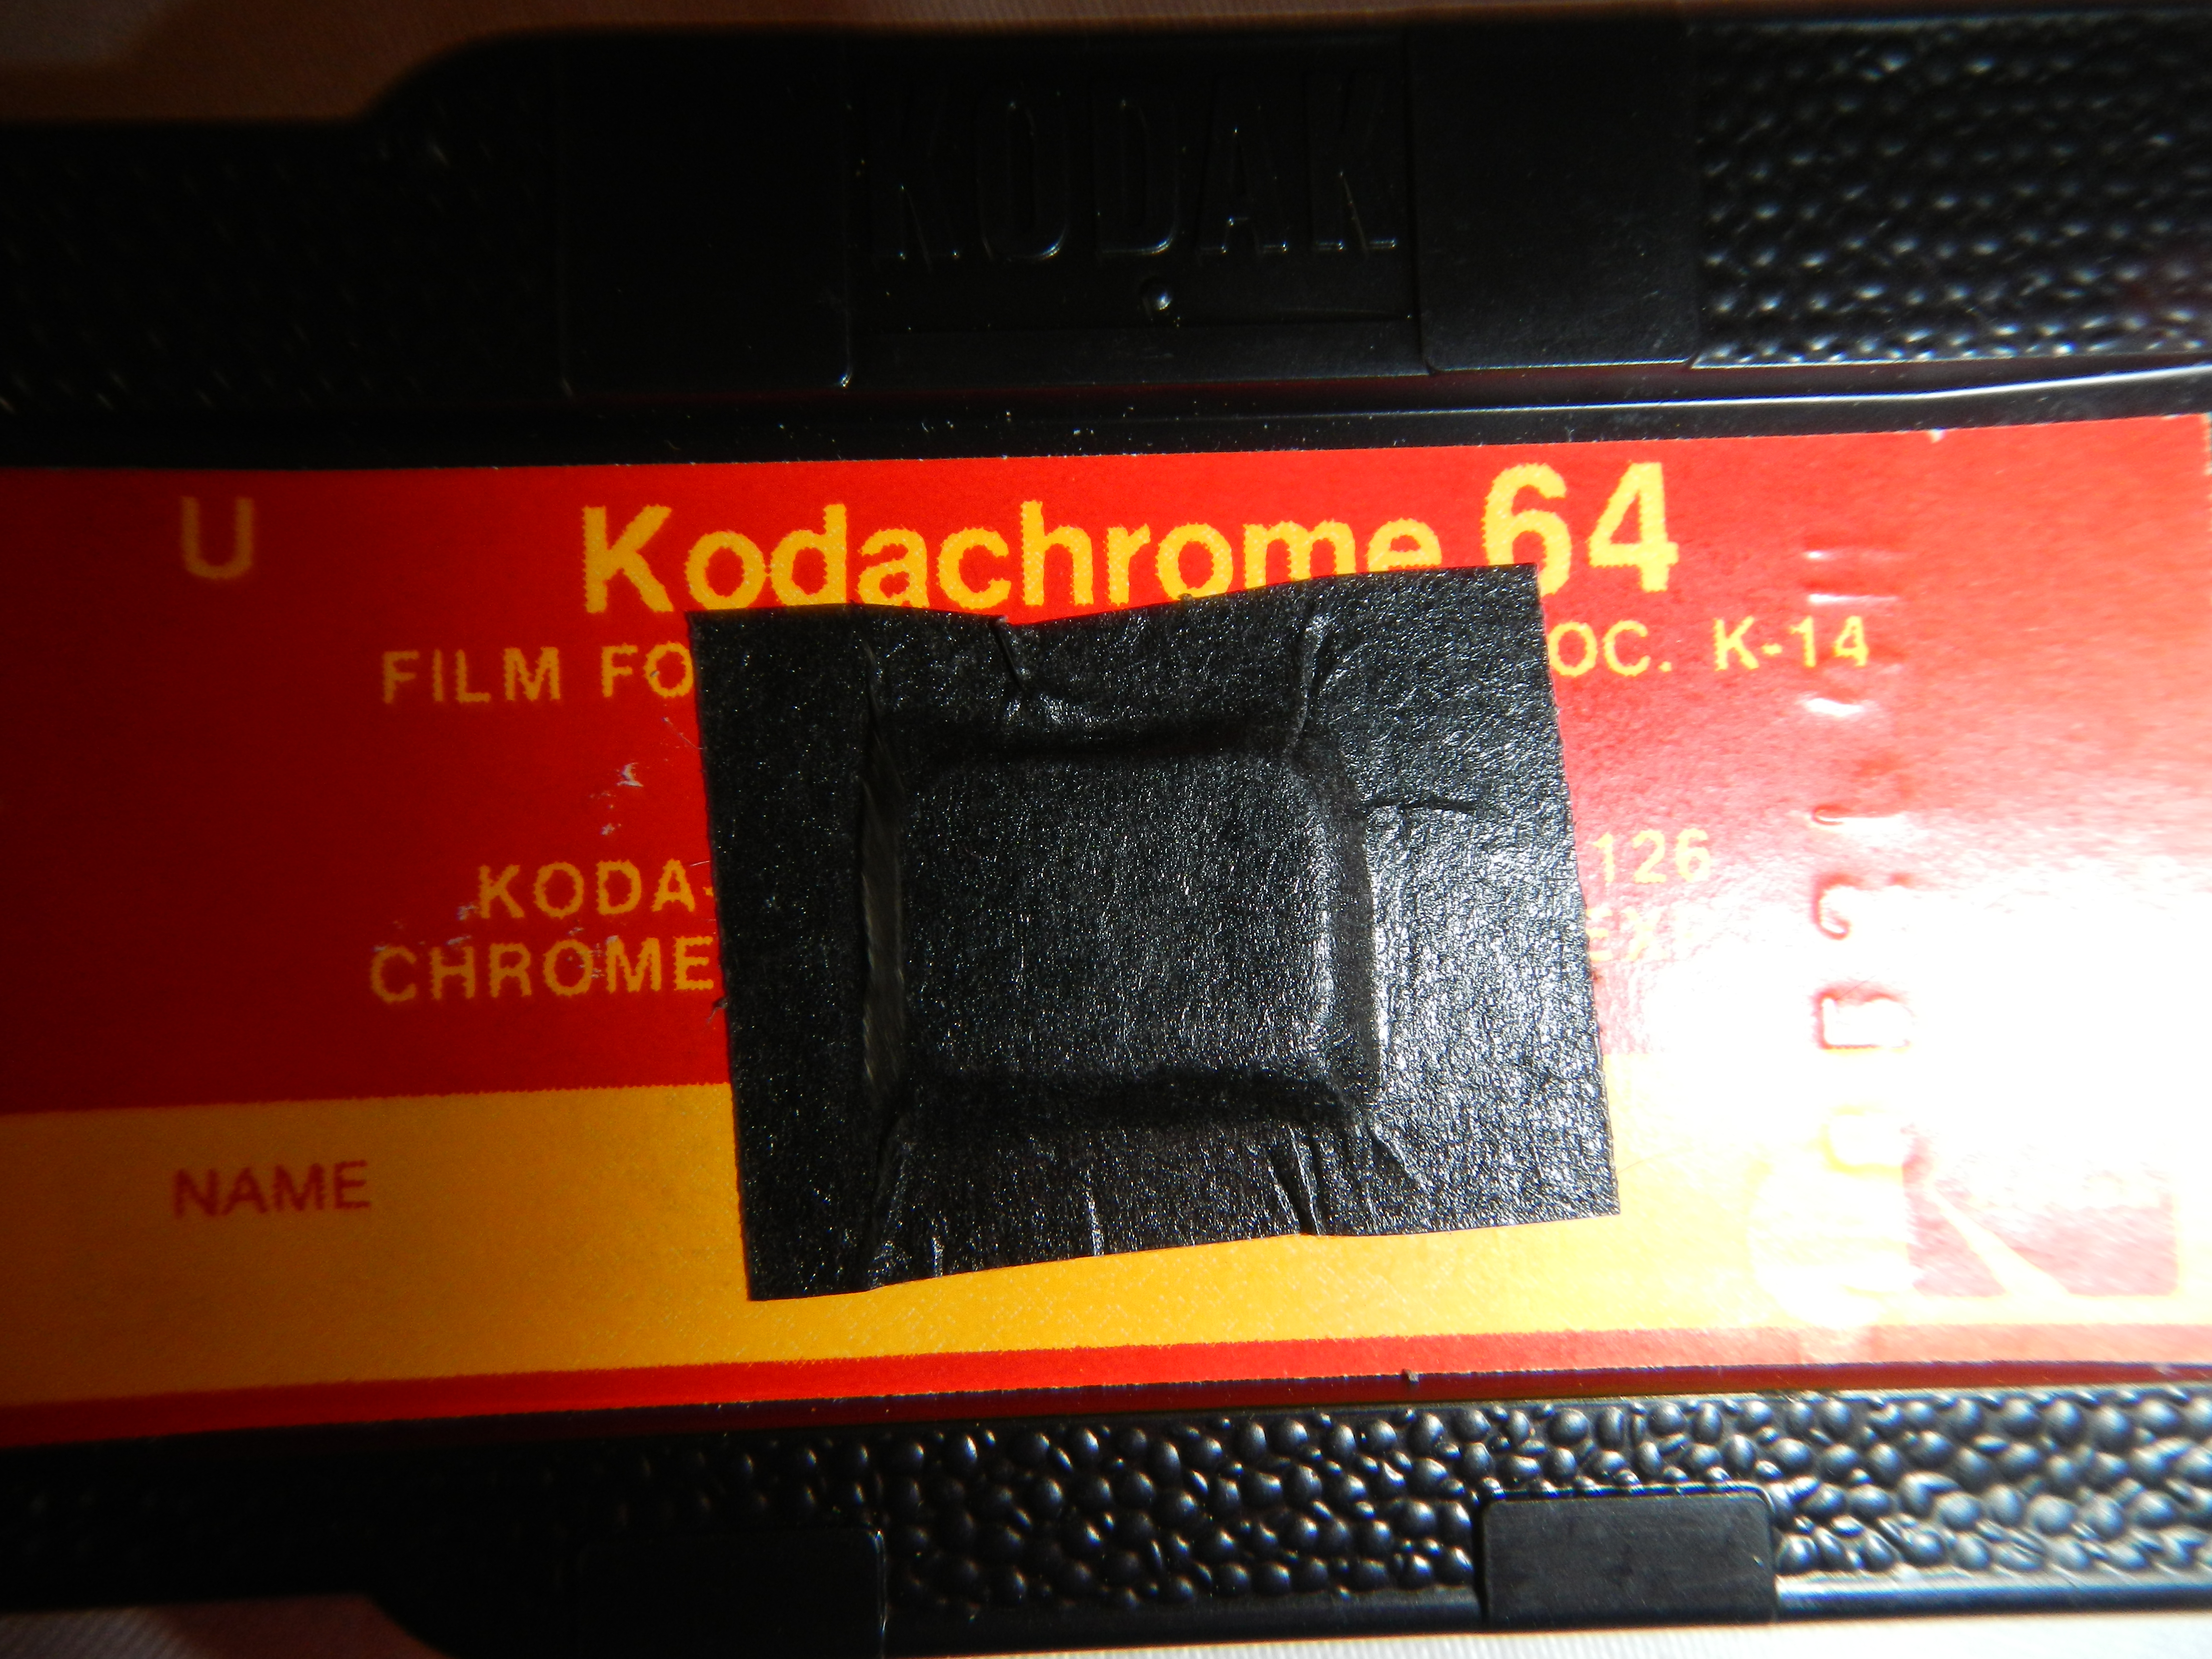 Tape the film count window on the cartridge and the camera.